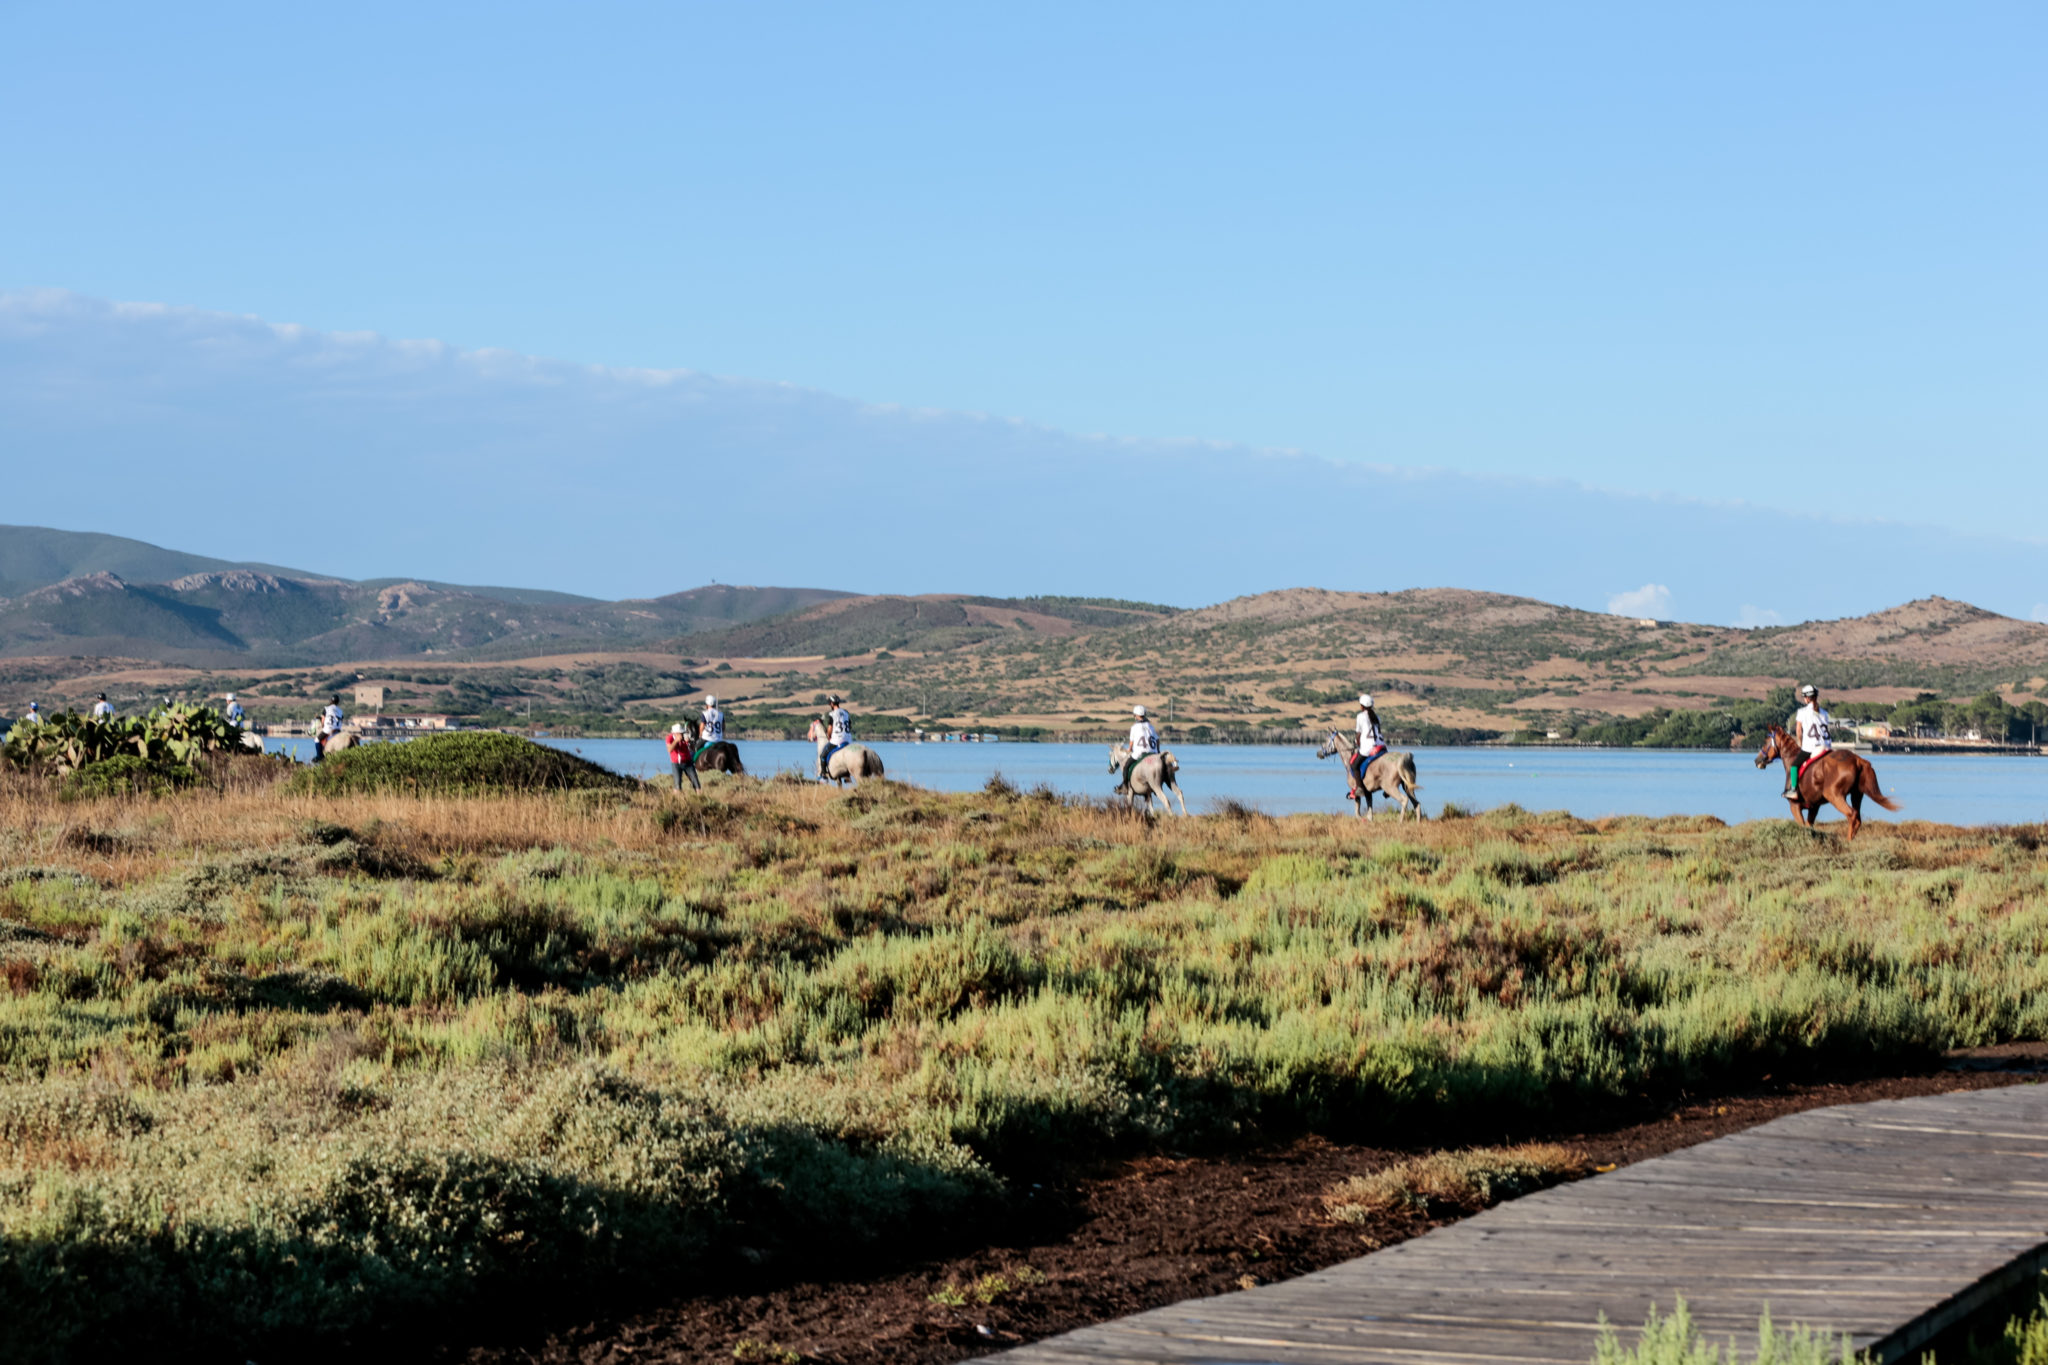 Endurance World Sardinia. Racing next to the water.